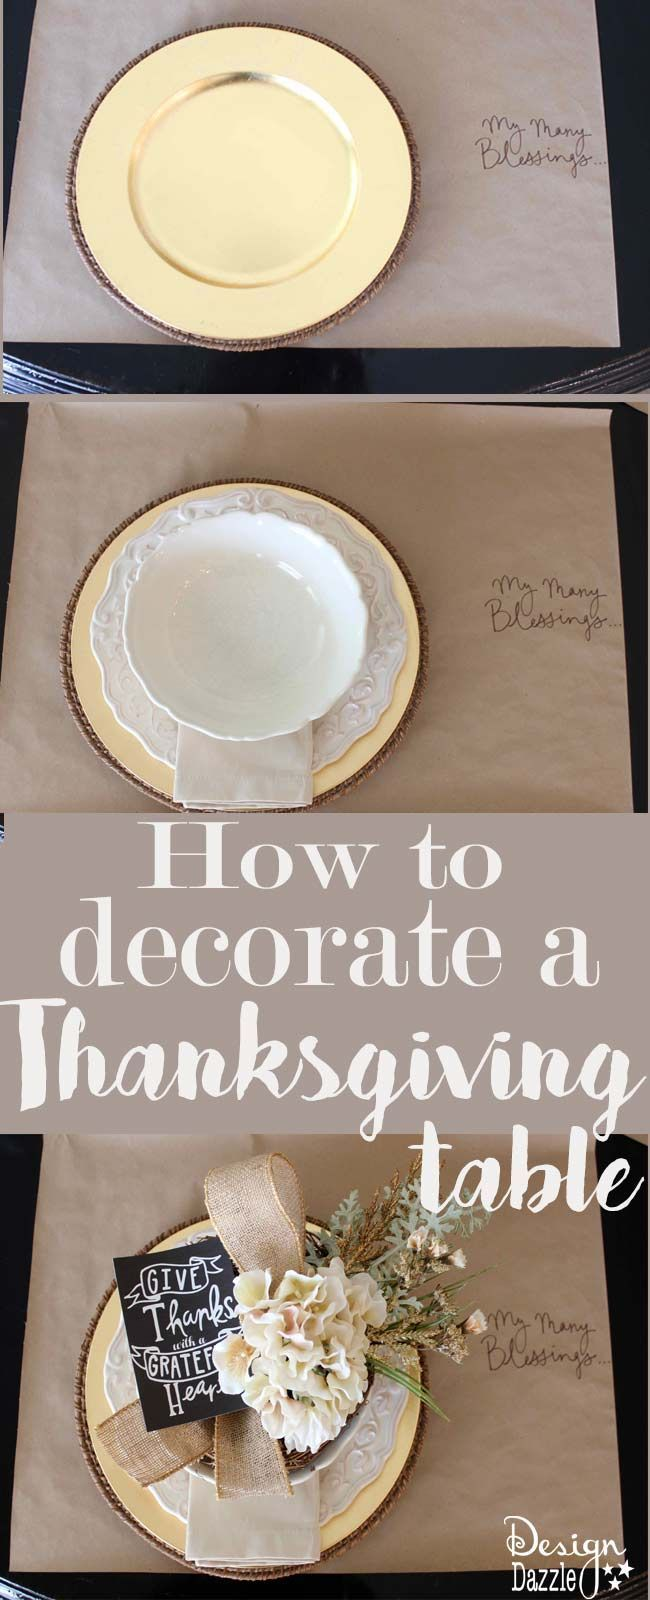 """I'm sharing how-to decorate step-by-step  a Thanksgiving tablescape - a bit of neutral with a touch of glitz. Free printable """"Give Thanks with a Grateful Heart"""". MichaelsMakers Design Dazzle"""